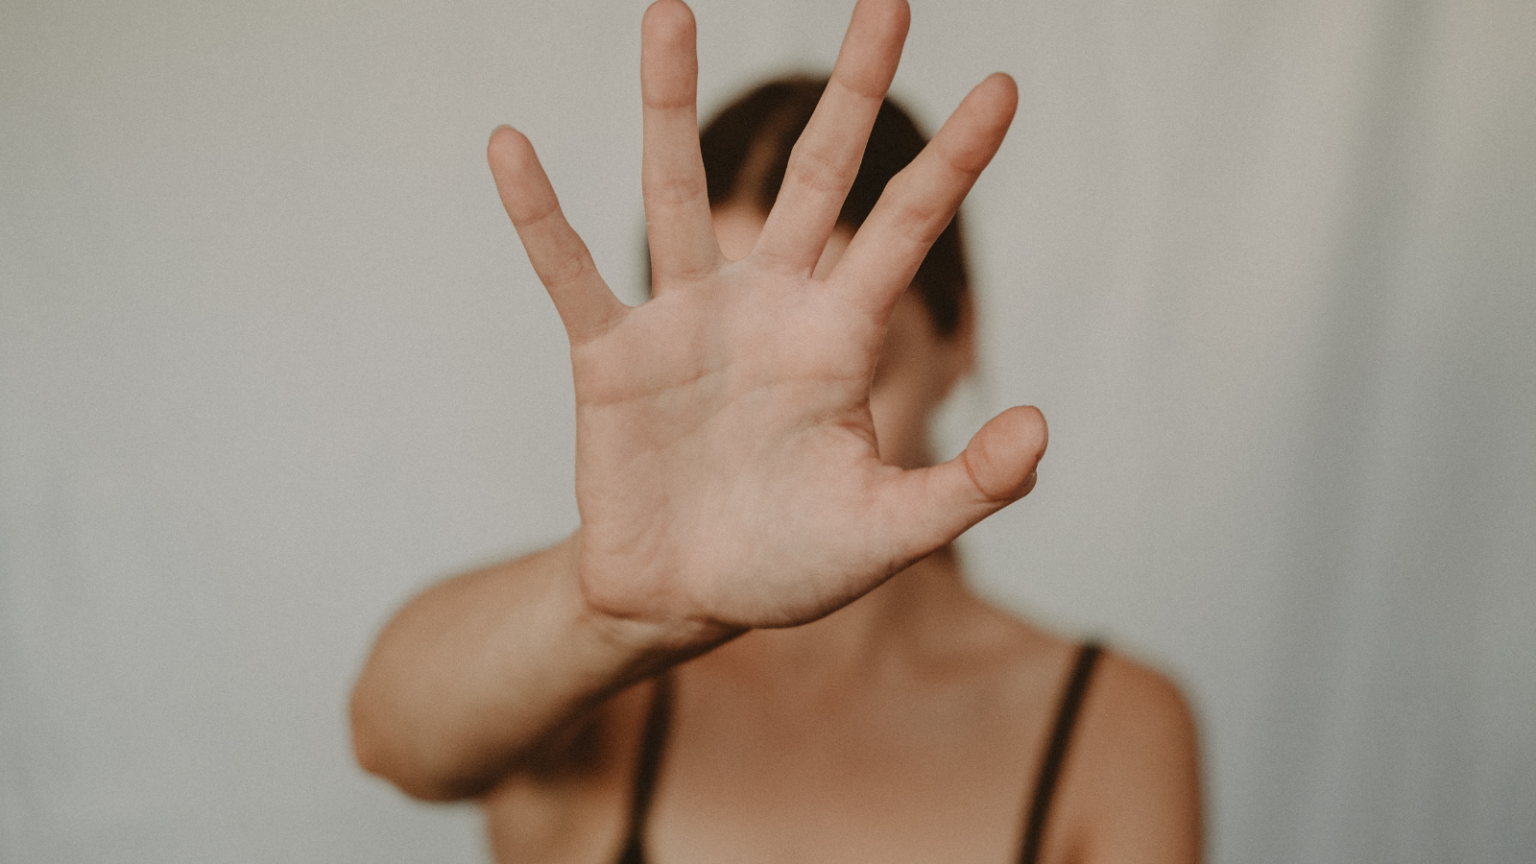 white woman's hand up to the screen palm facing out, covering her face, illustration Have you considered adoption if this doesn't workt fertility now article